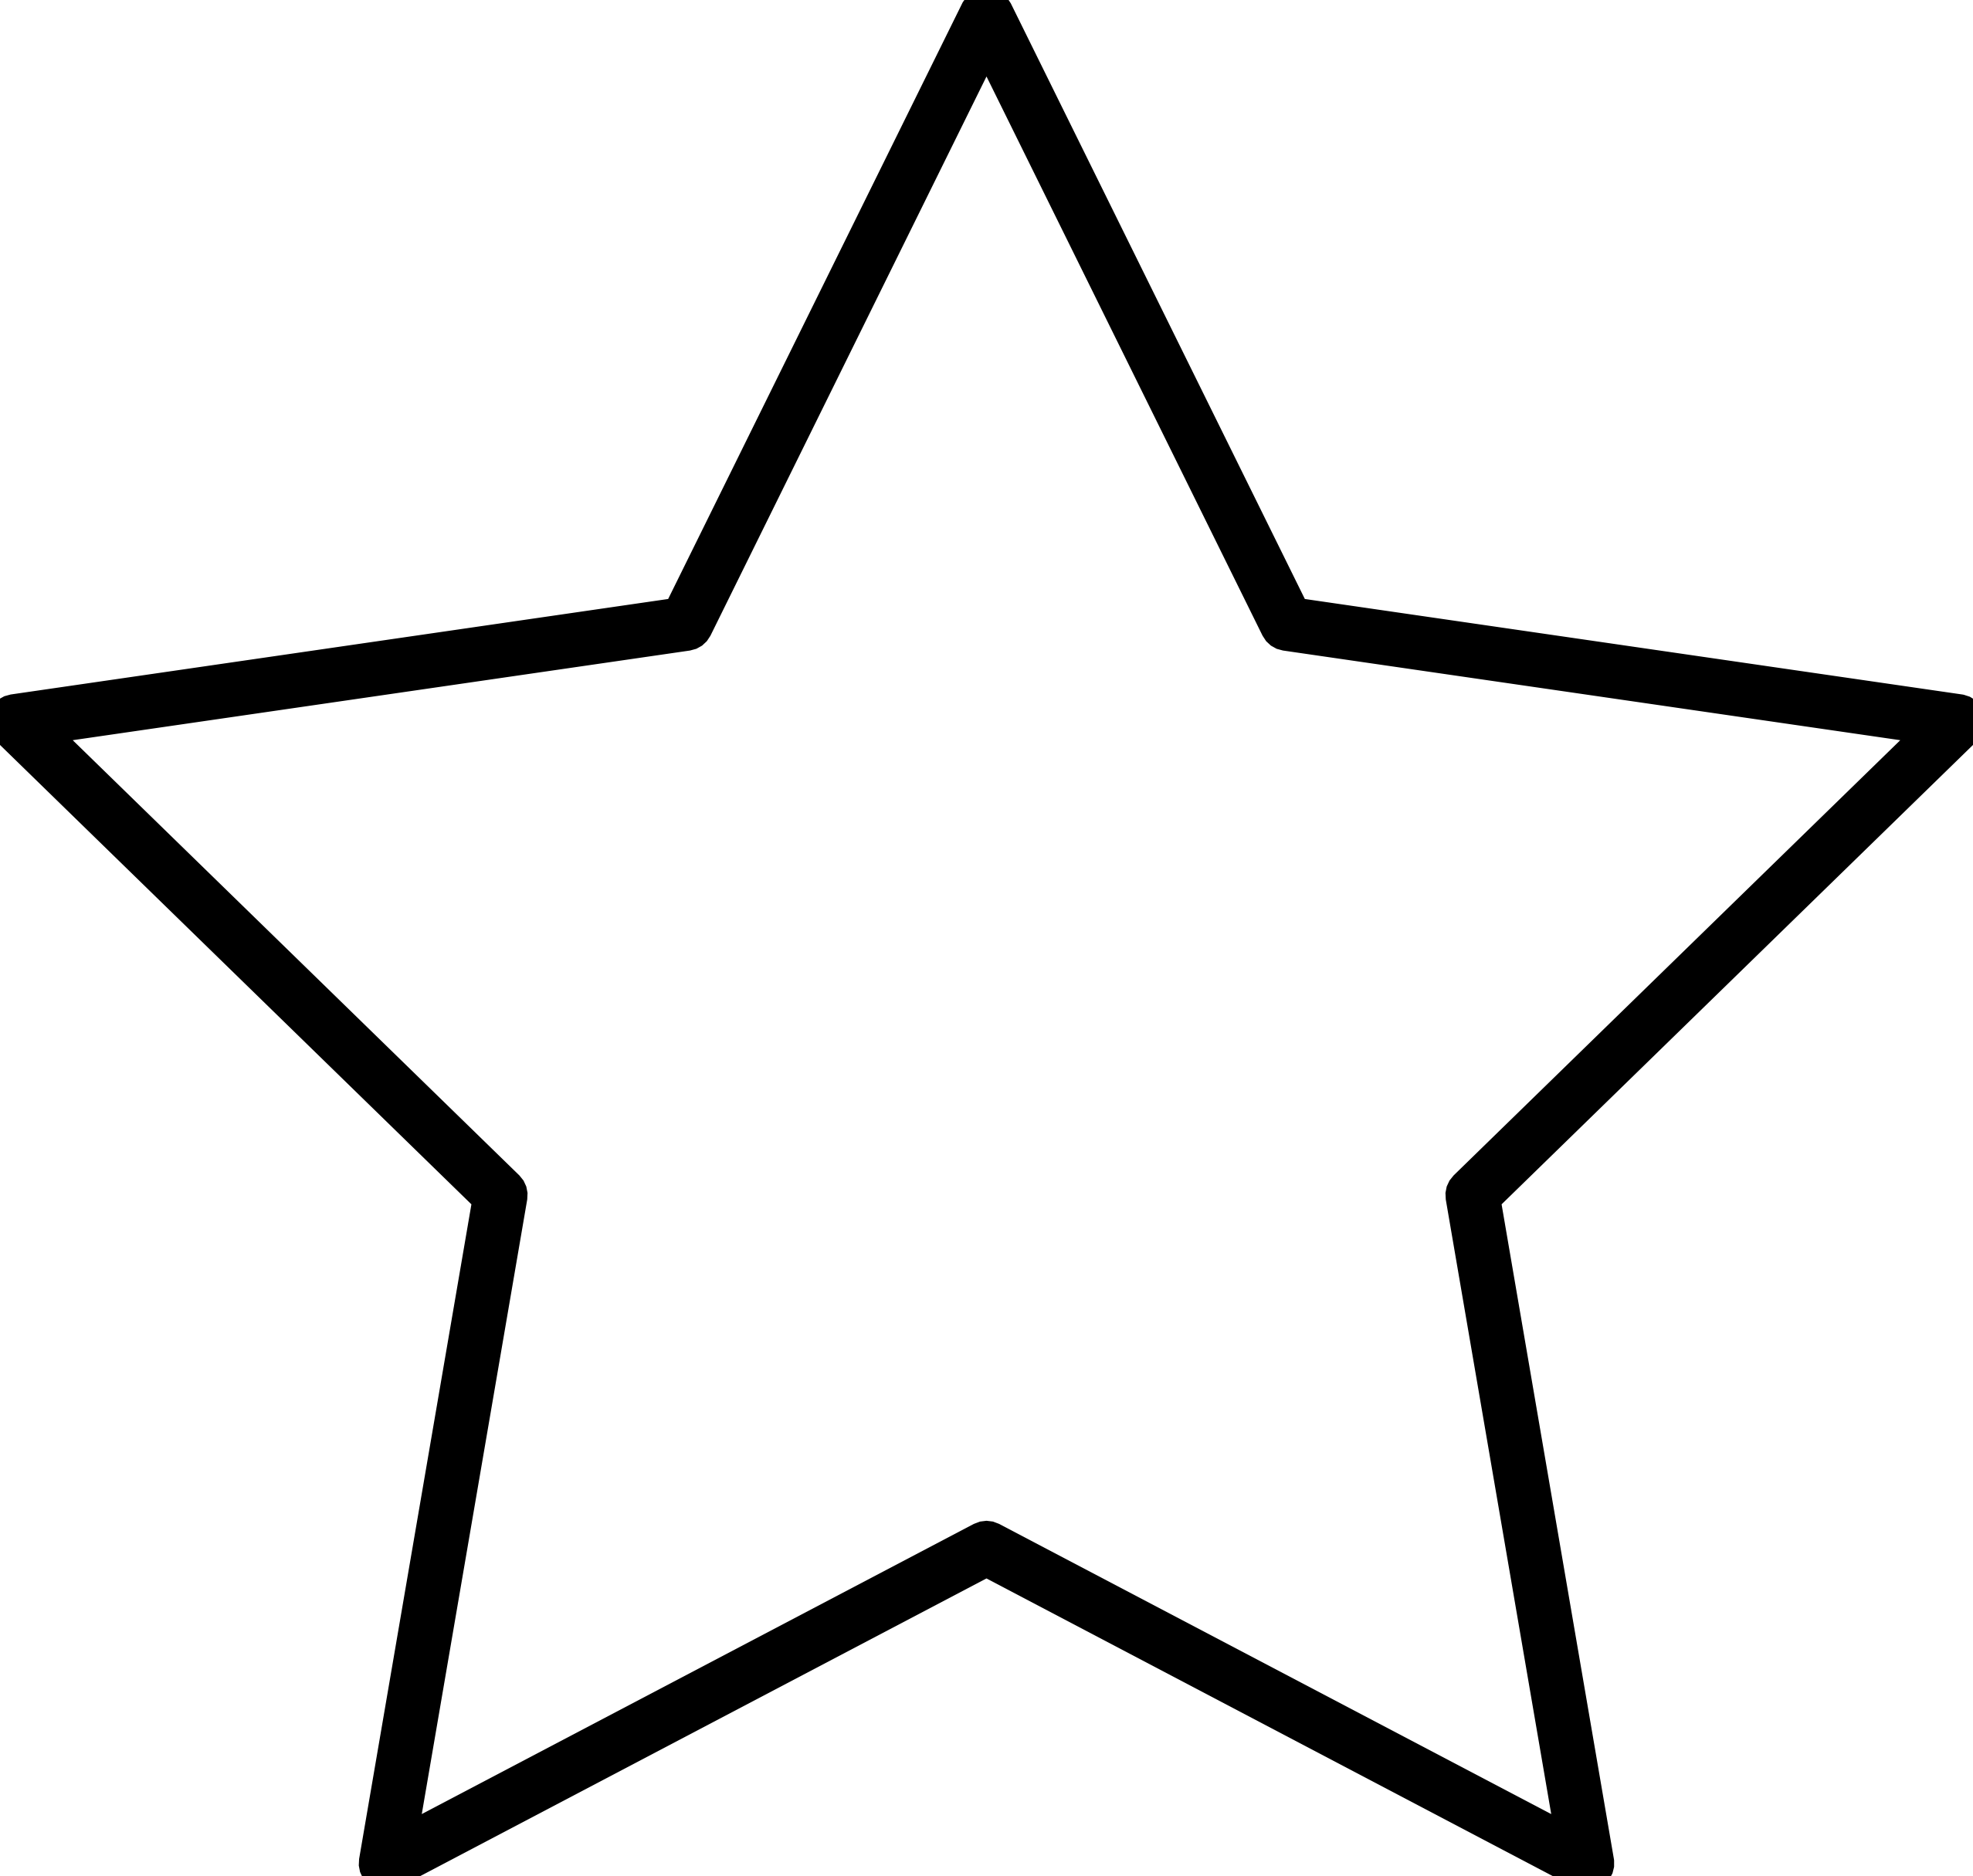 2555x2430 Star Black And White Christmas Star Clip Art Black And White Free